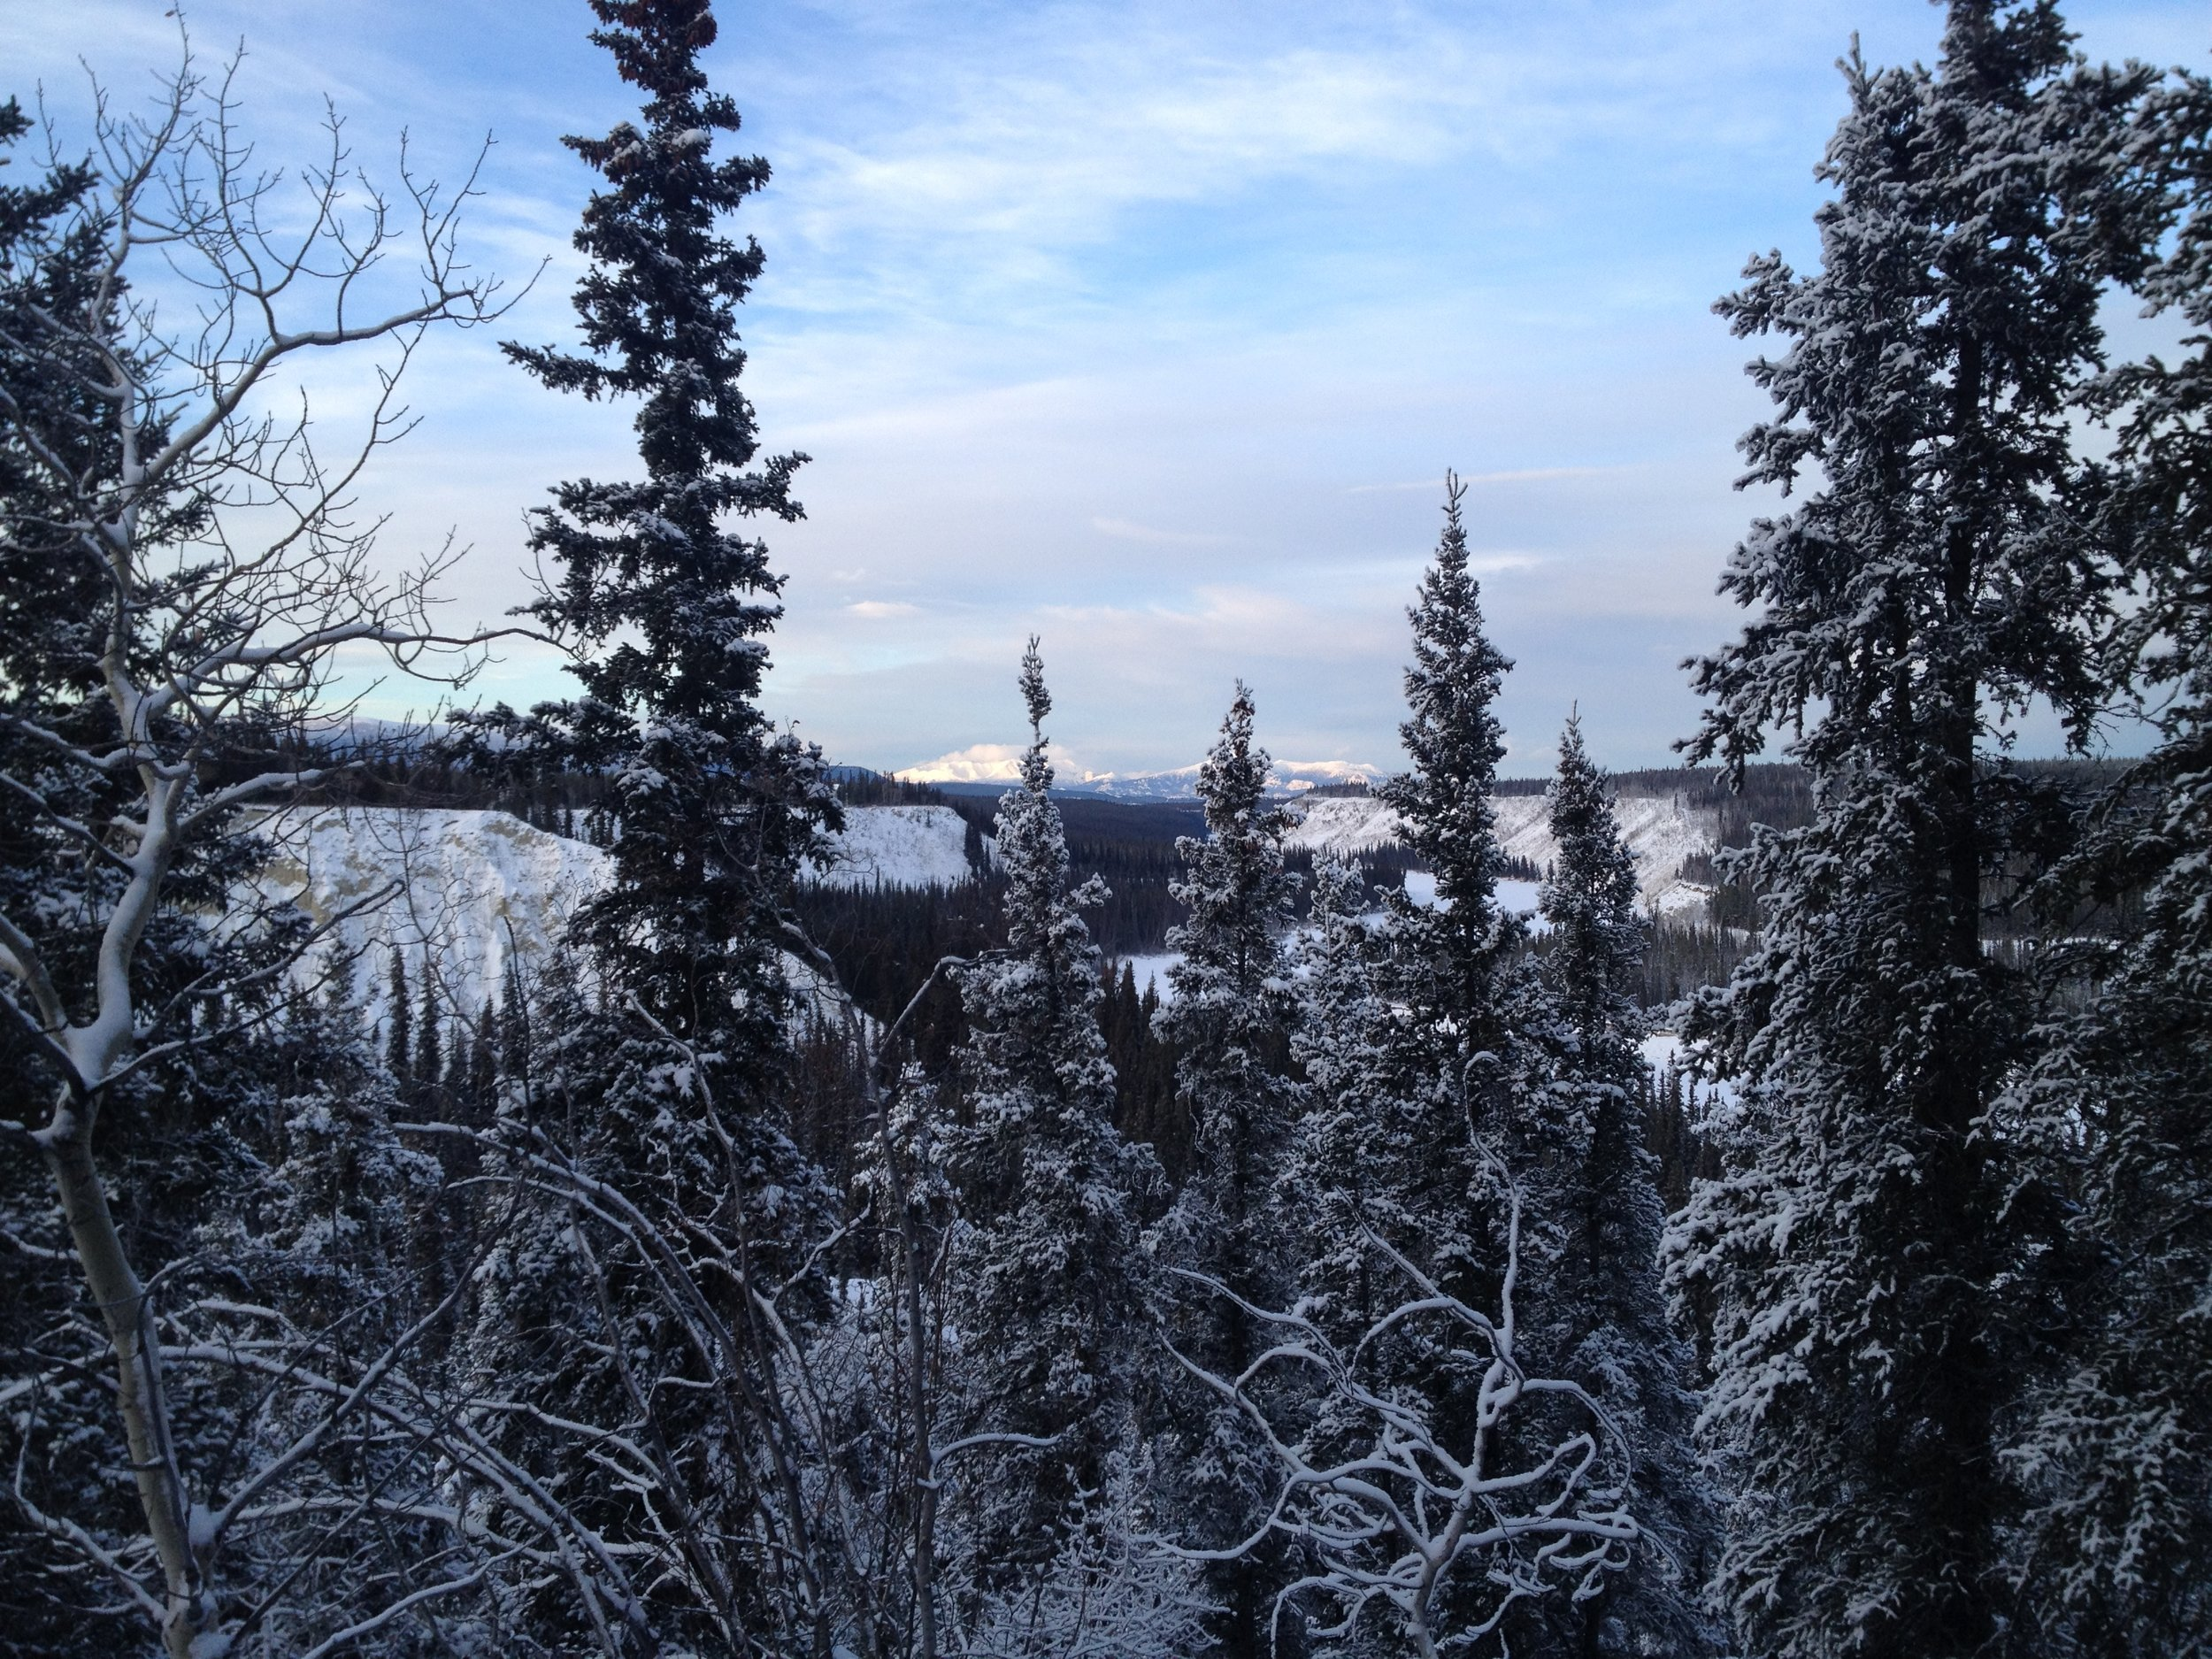 Beautiful views from a walk in Whitehorse over the Christmas holidays.